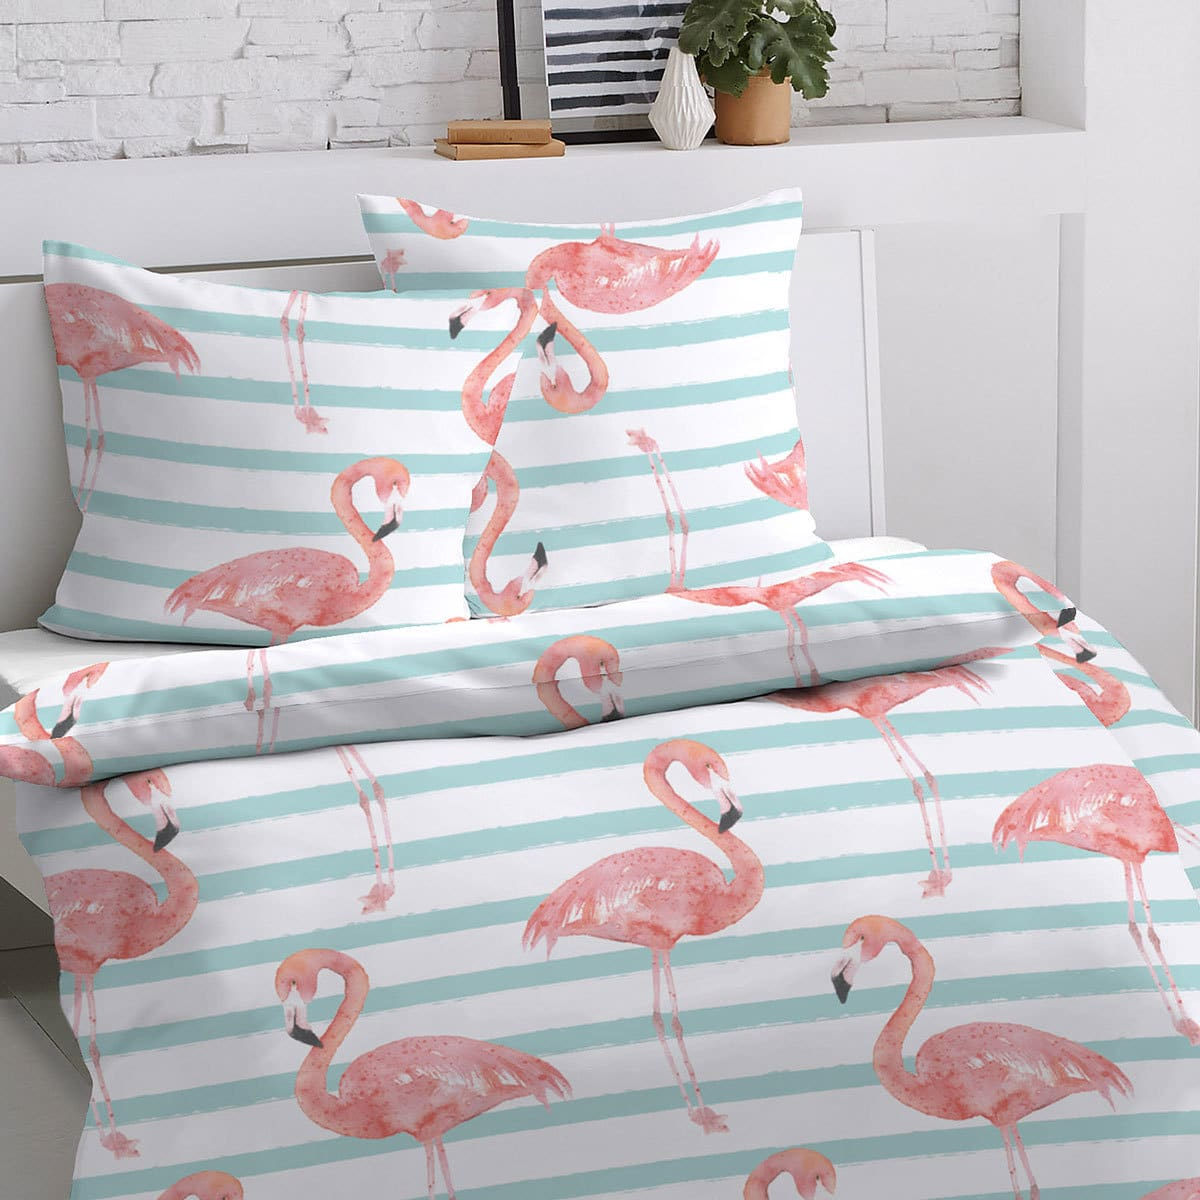 Flamingo Bettwäsche Dormisette Mako Satin Bettwäsche Flamingo